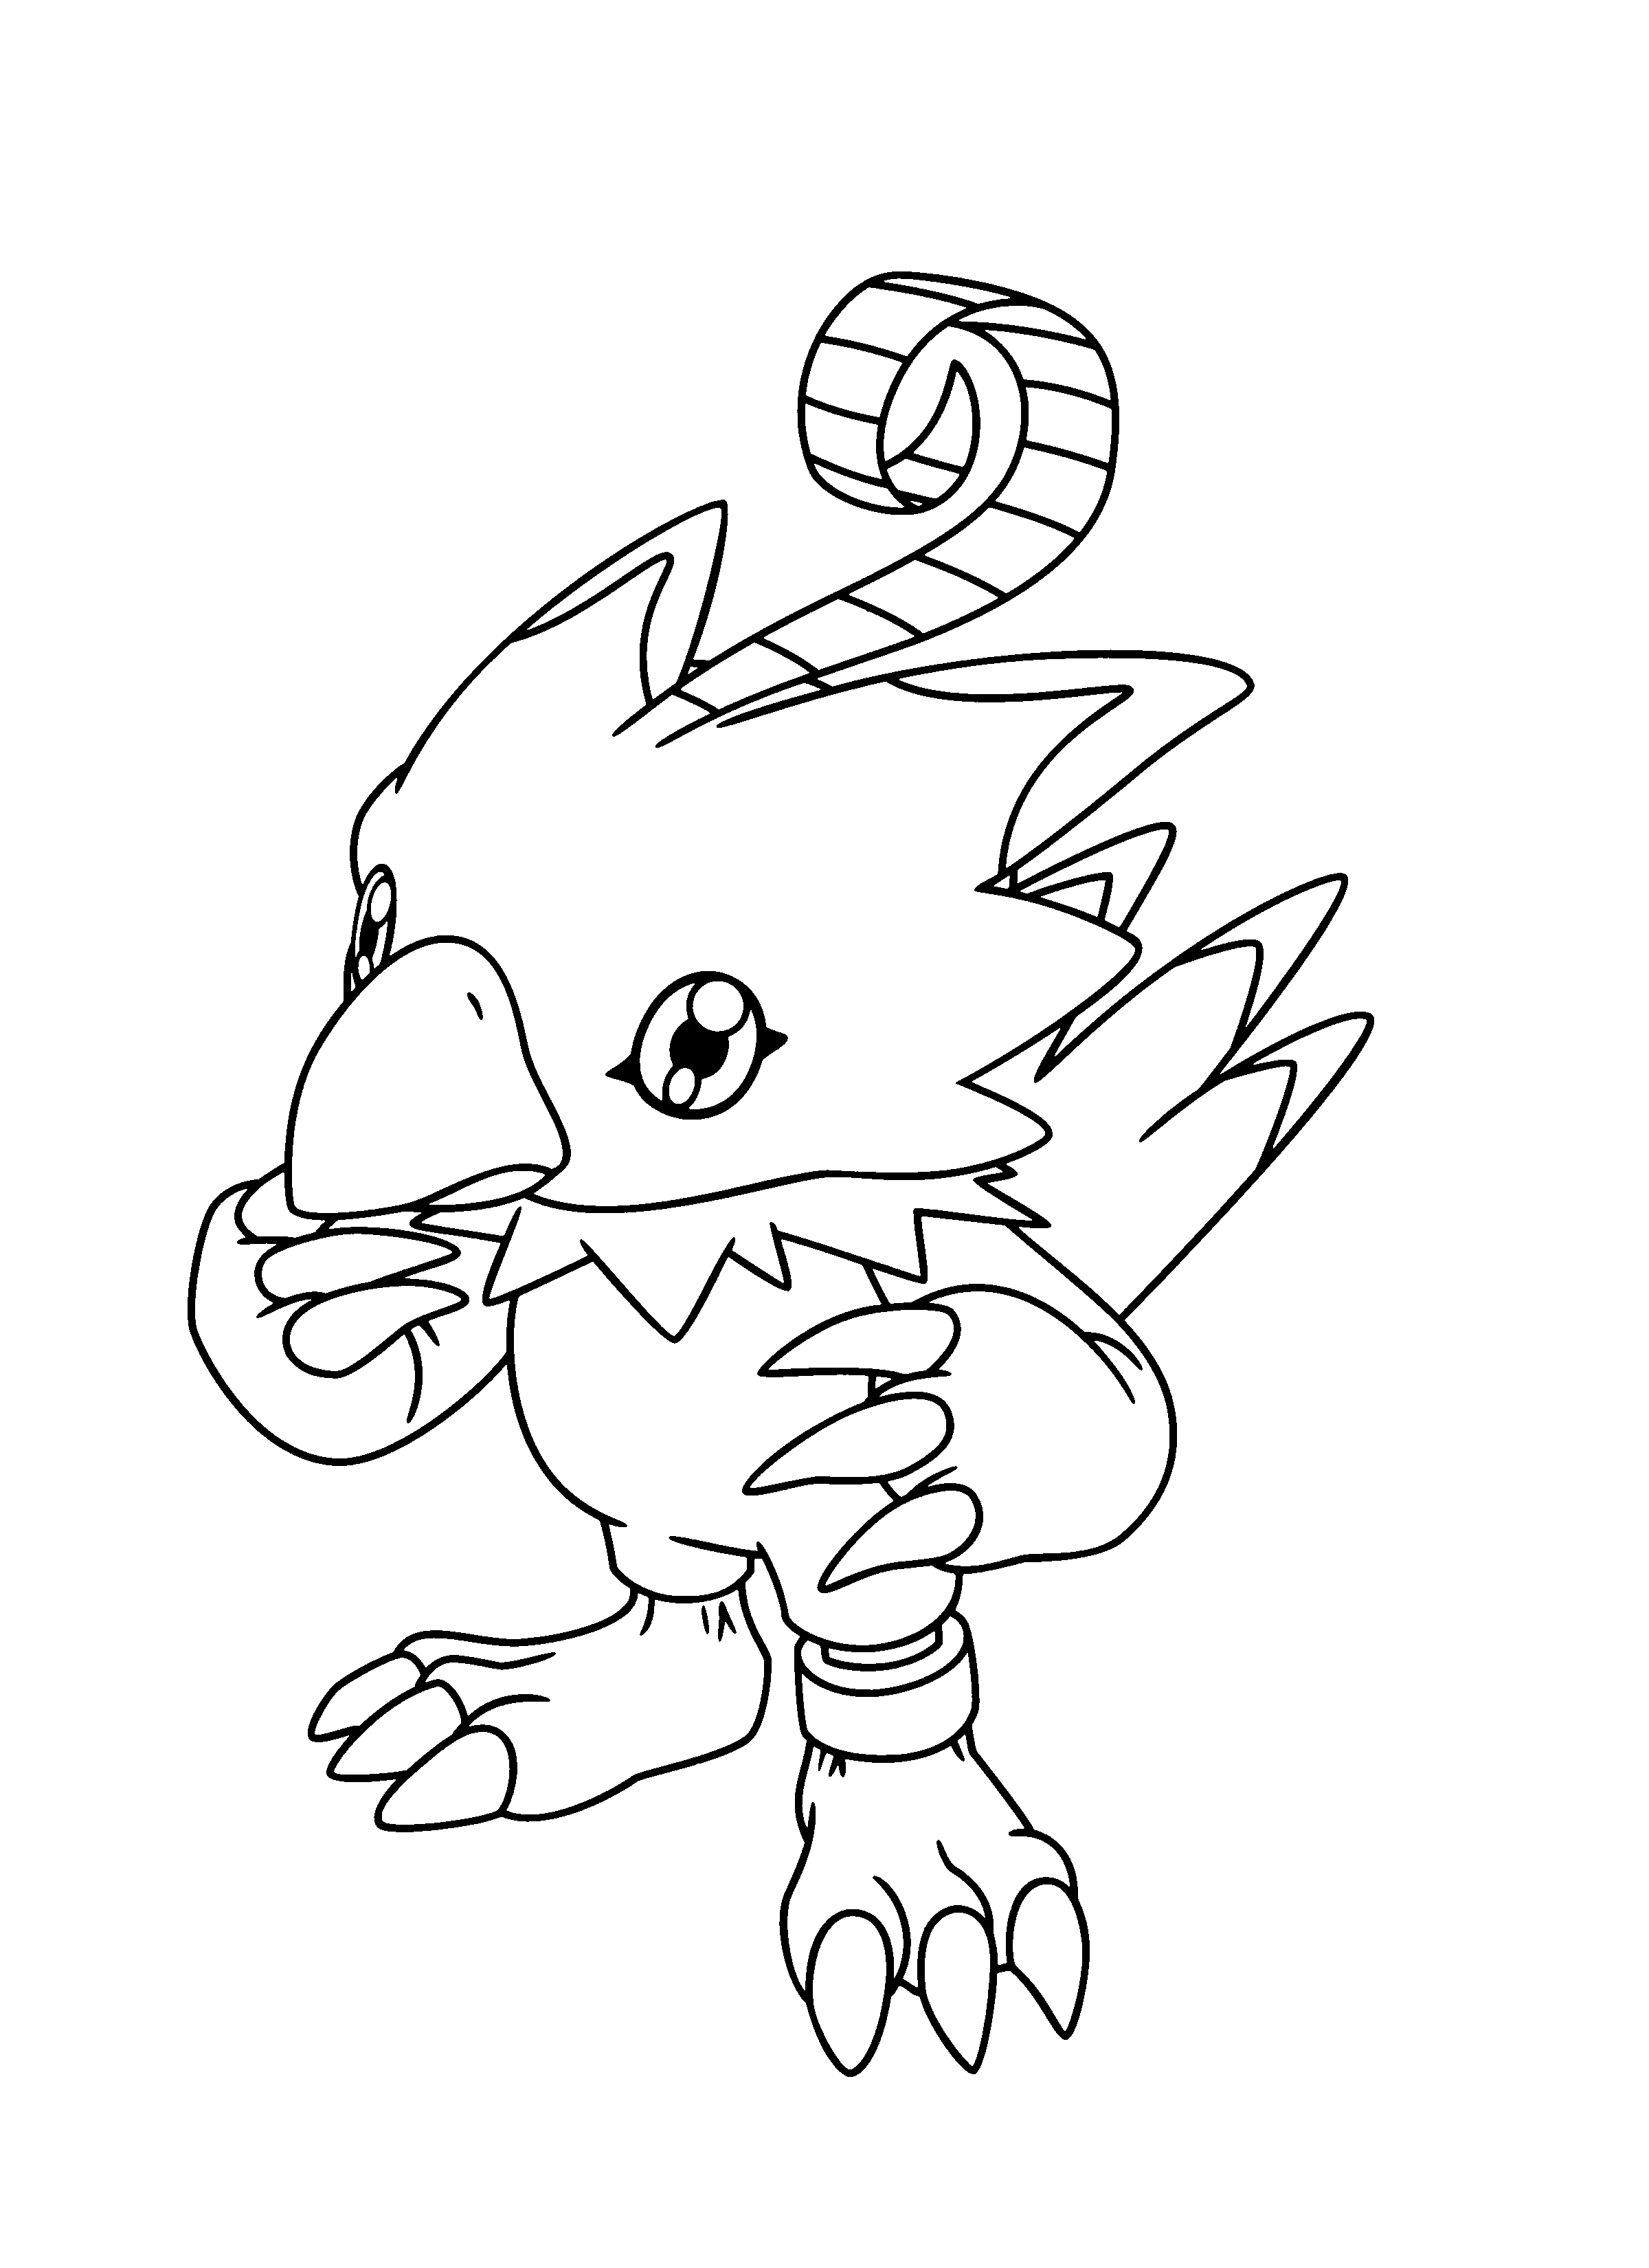 free coloring pages of digimon fusion Digimon Fusion Coloring Pages  Digimon Coloring Book